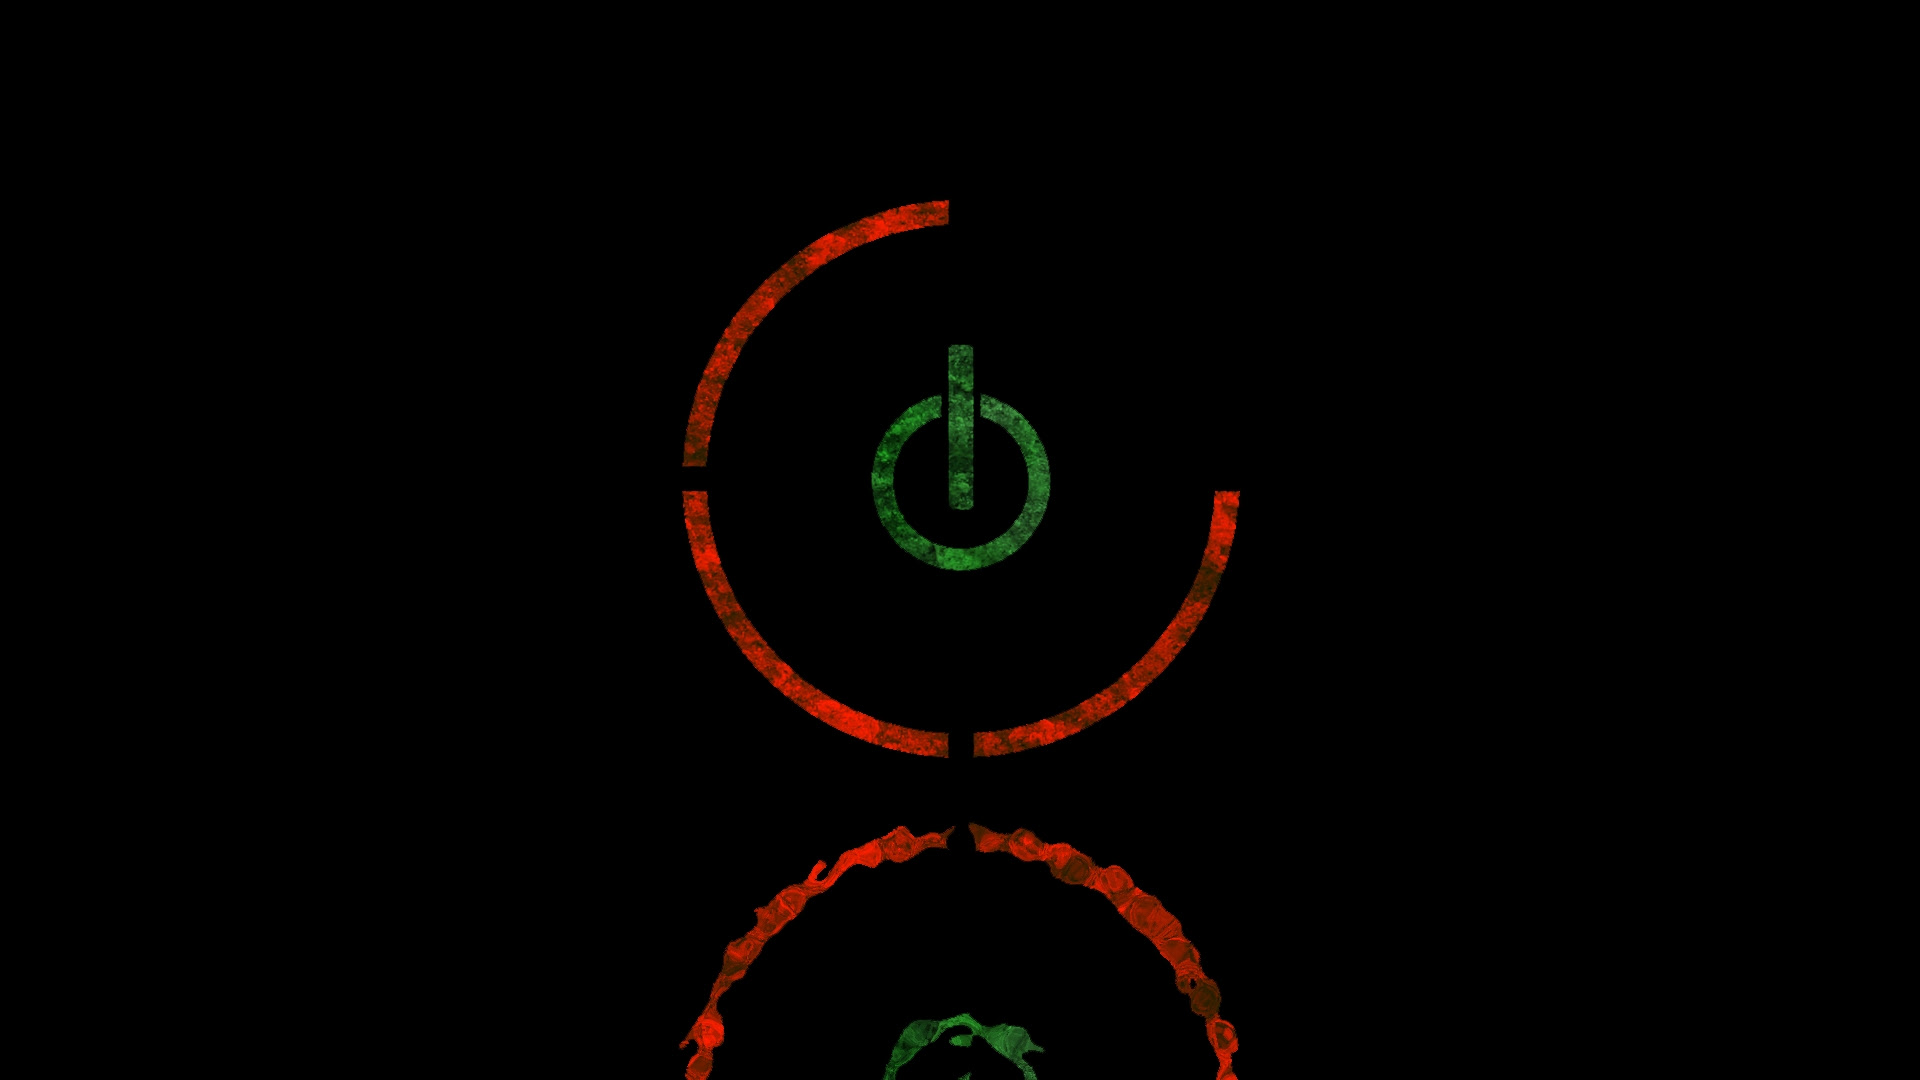 Xbox 360 Red Ring Of Death 1920x1080 Wallpaper High Quality